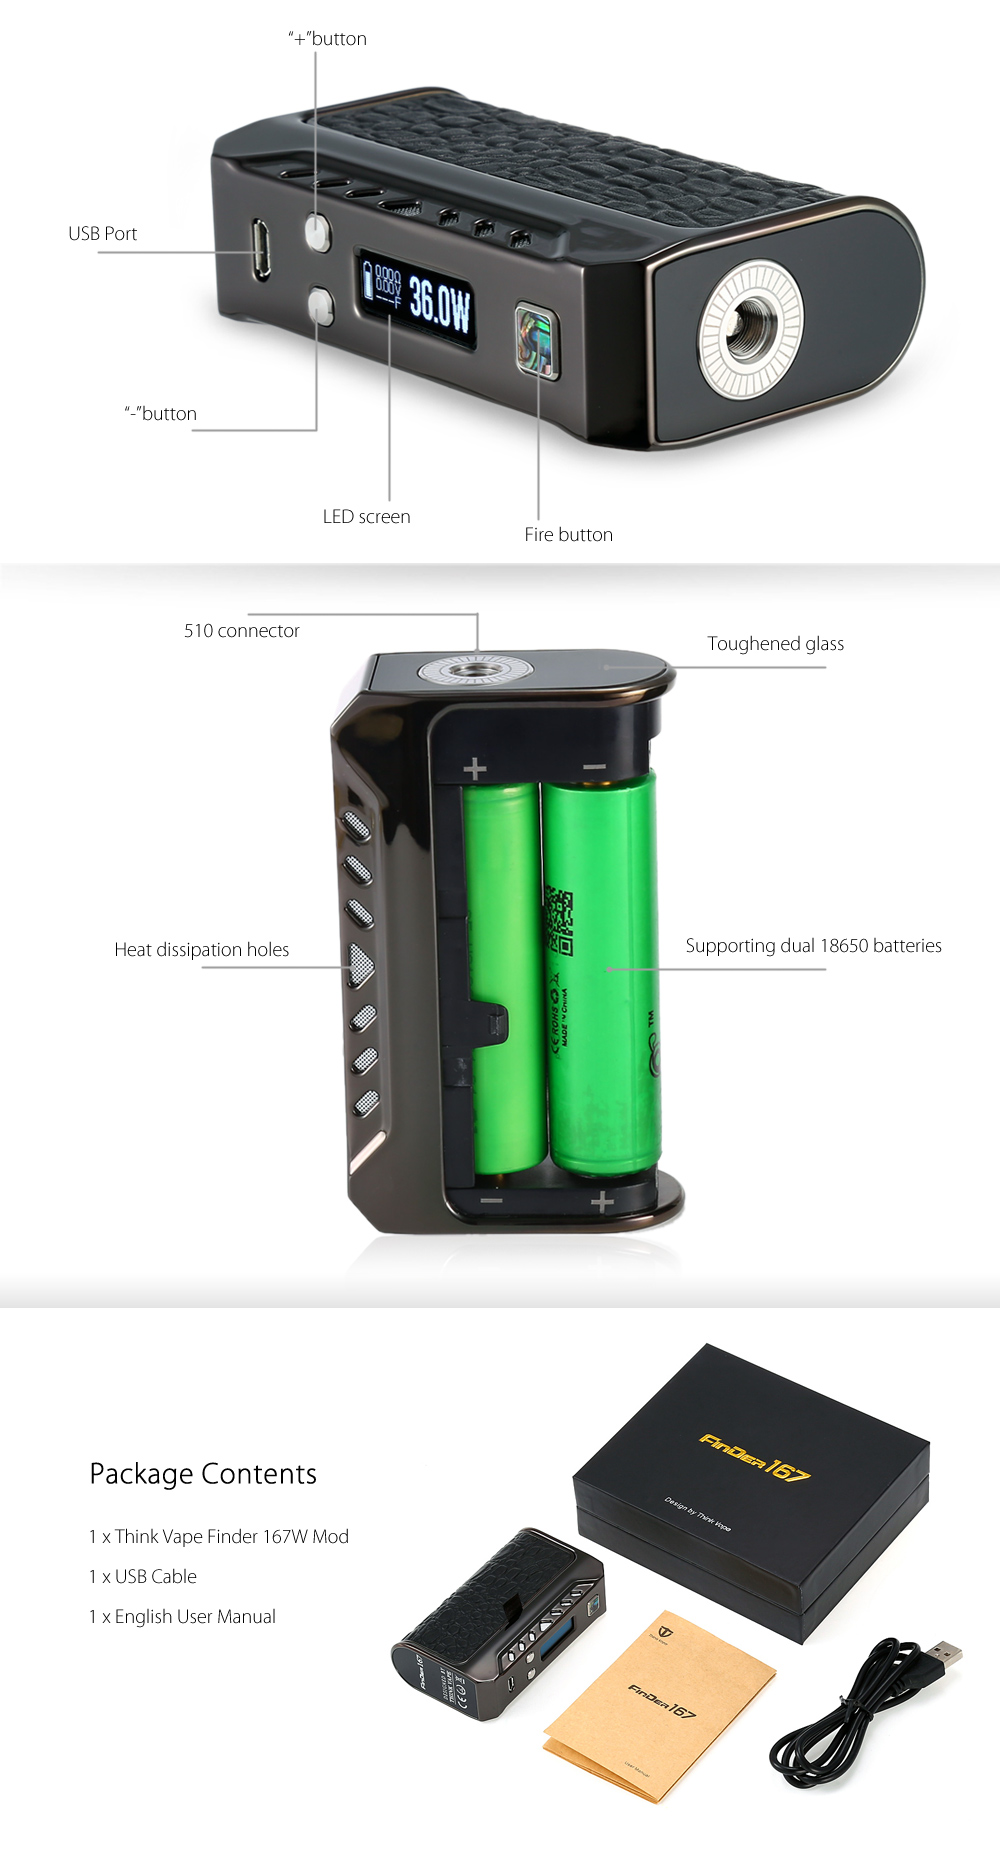 Оригинал Think Vape Finder 167W Мод